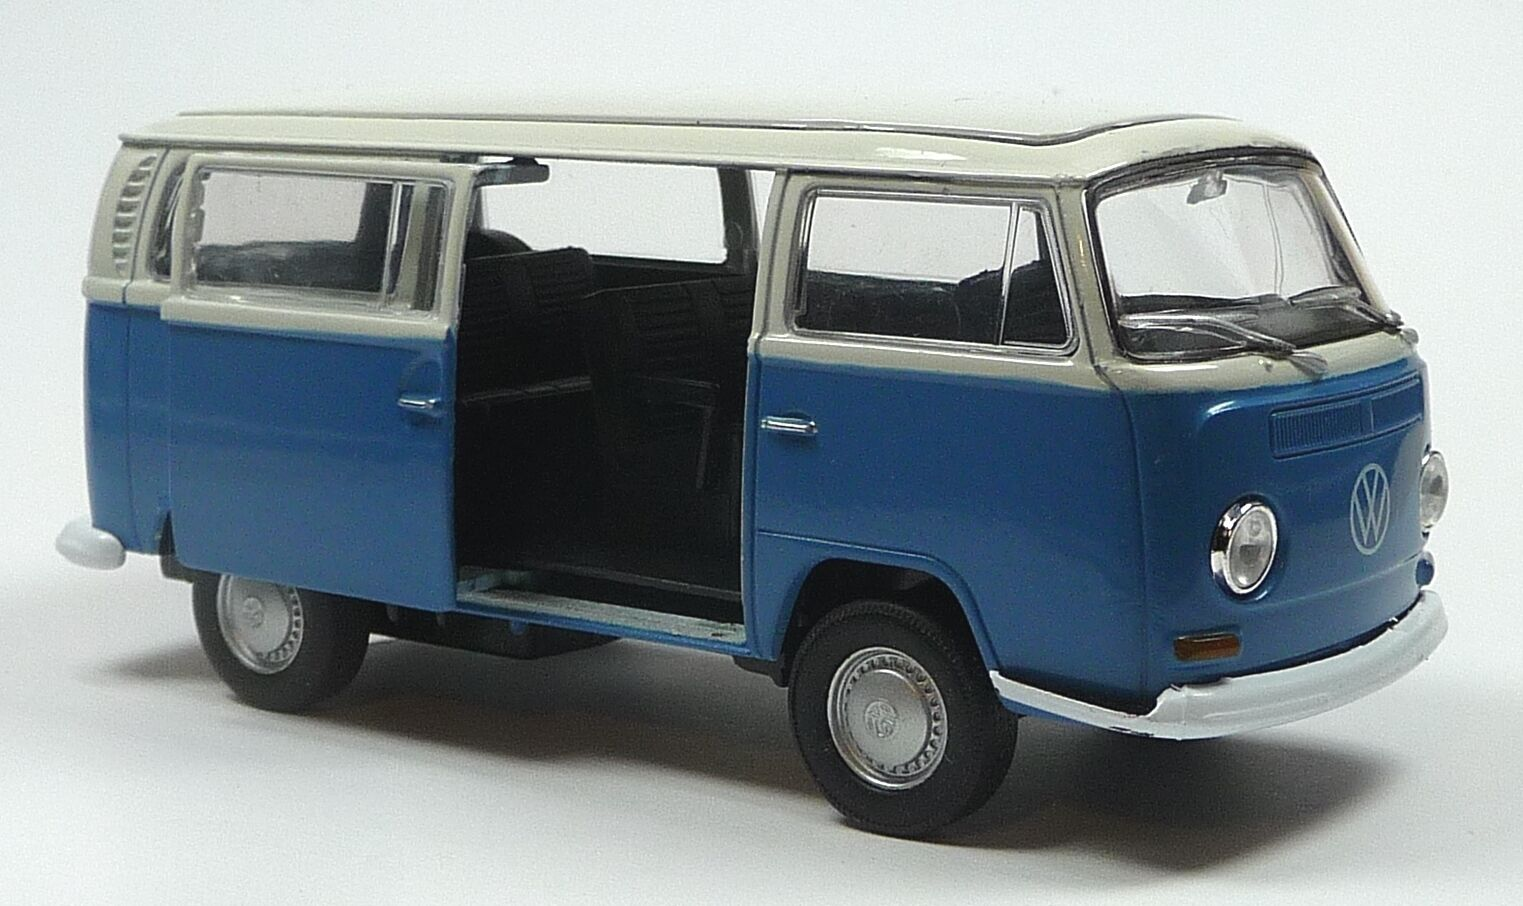 vw bus 1972 bulli t2 blau wei modellauto spritzguss 1. Black Bedroom Furniture Sets. Home Design Ideas